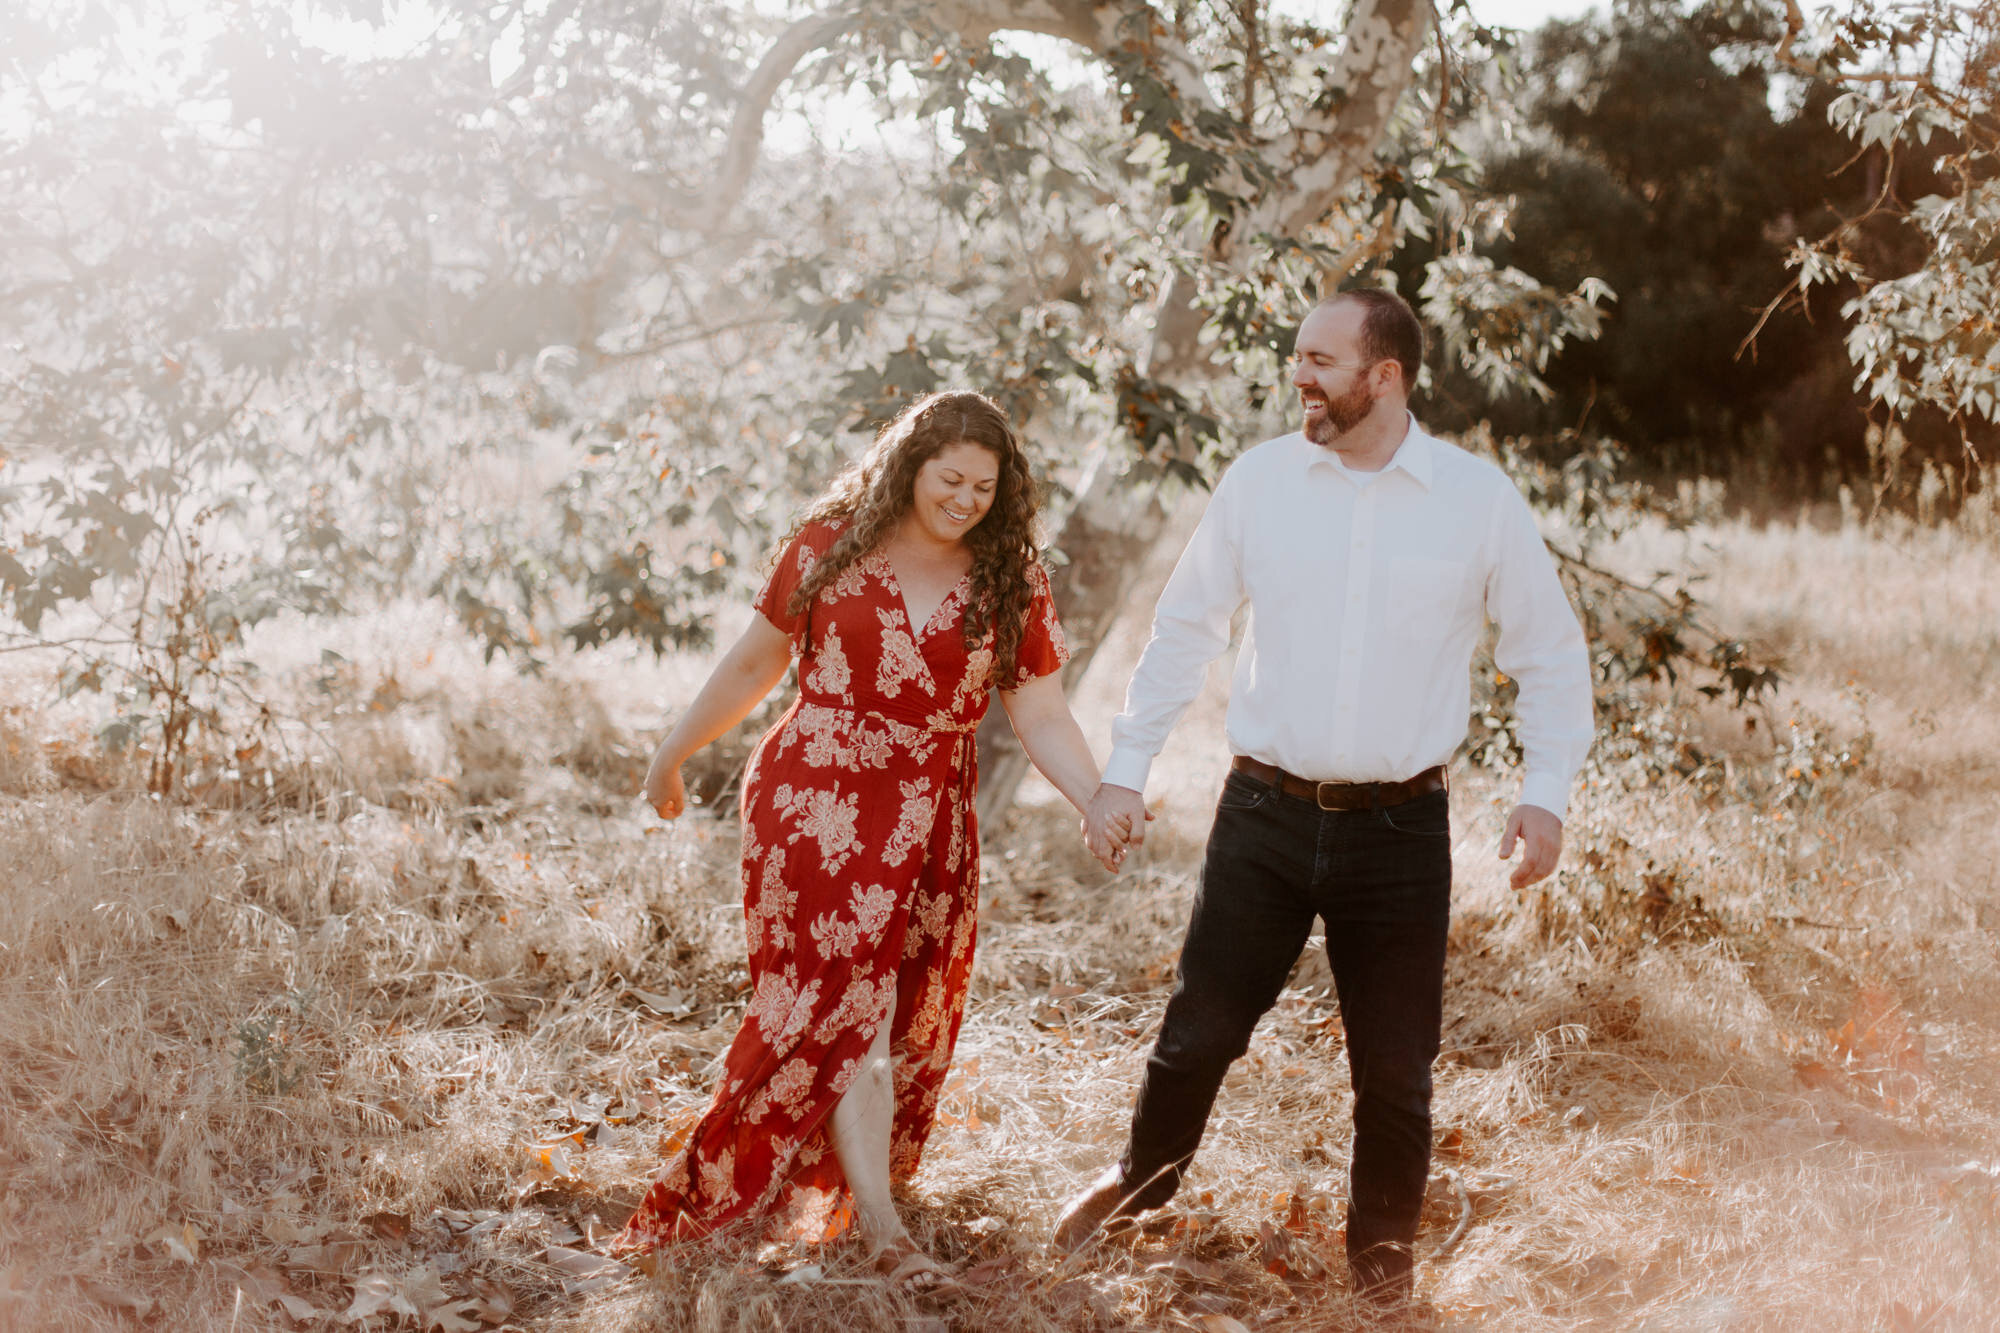 Marian Bear Park San Diego Wedding engagement photography0004.jpg